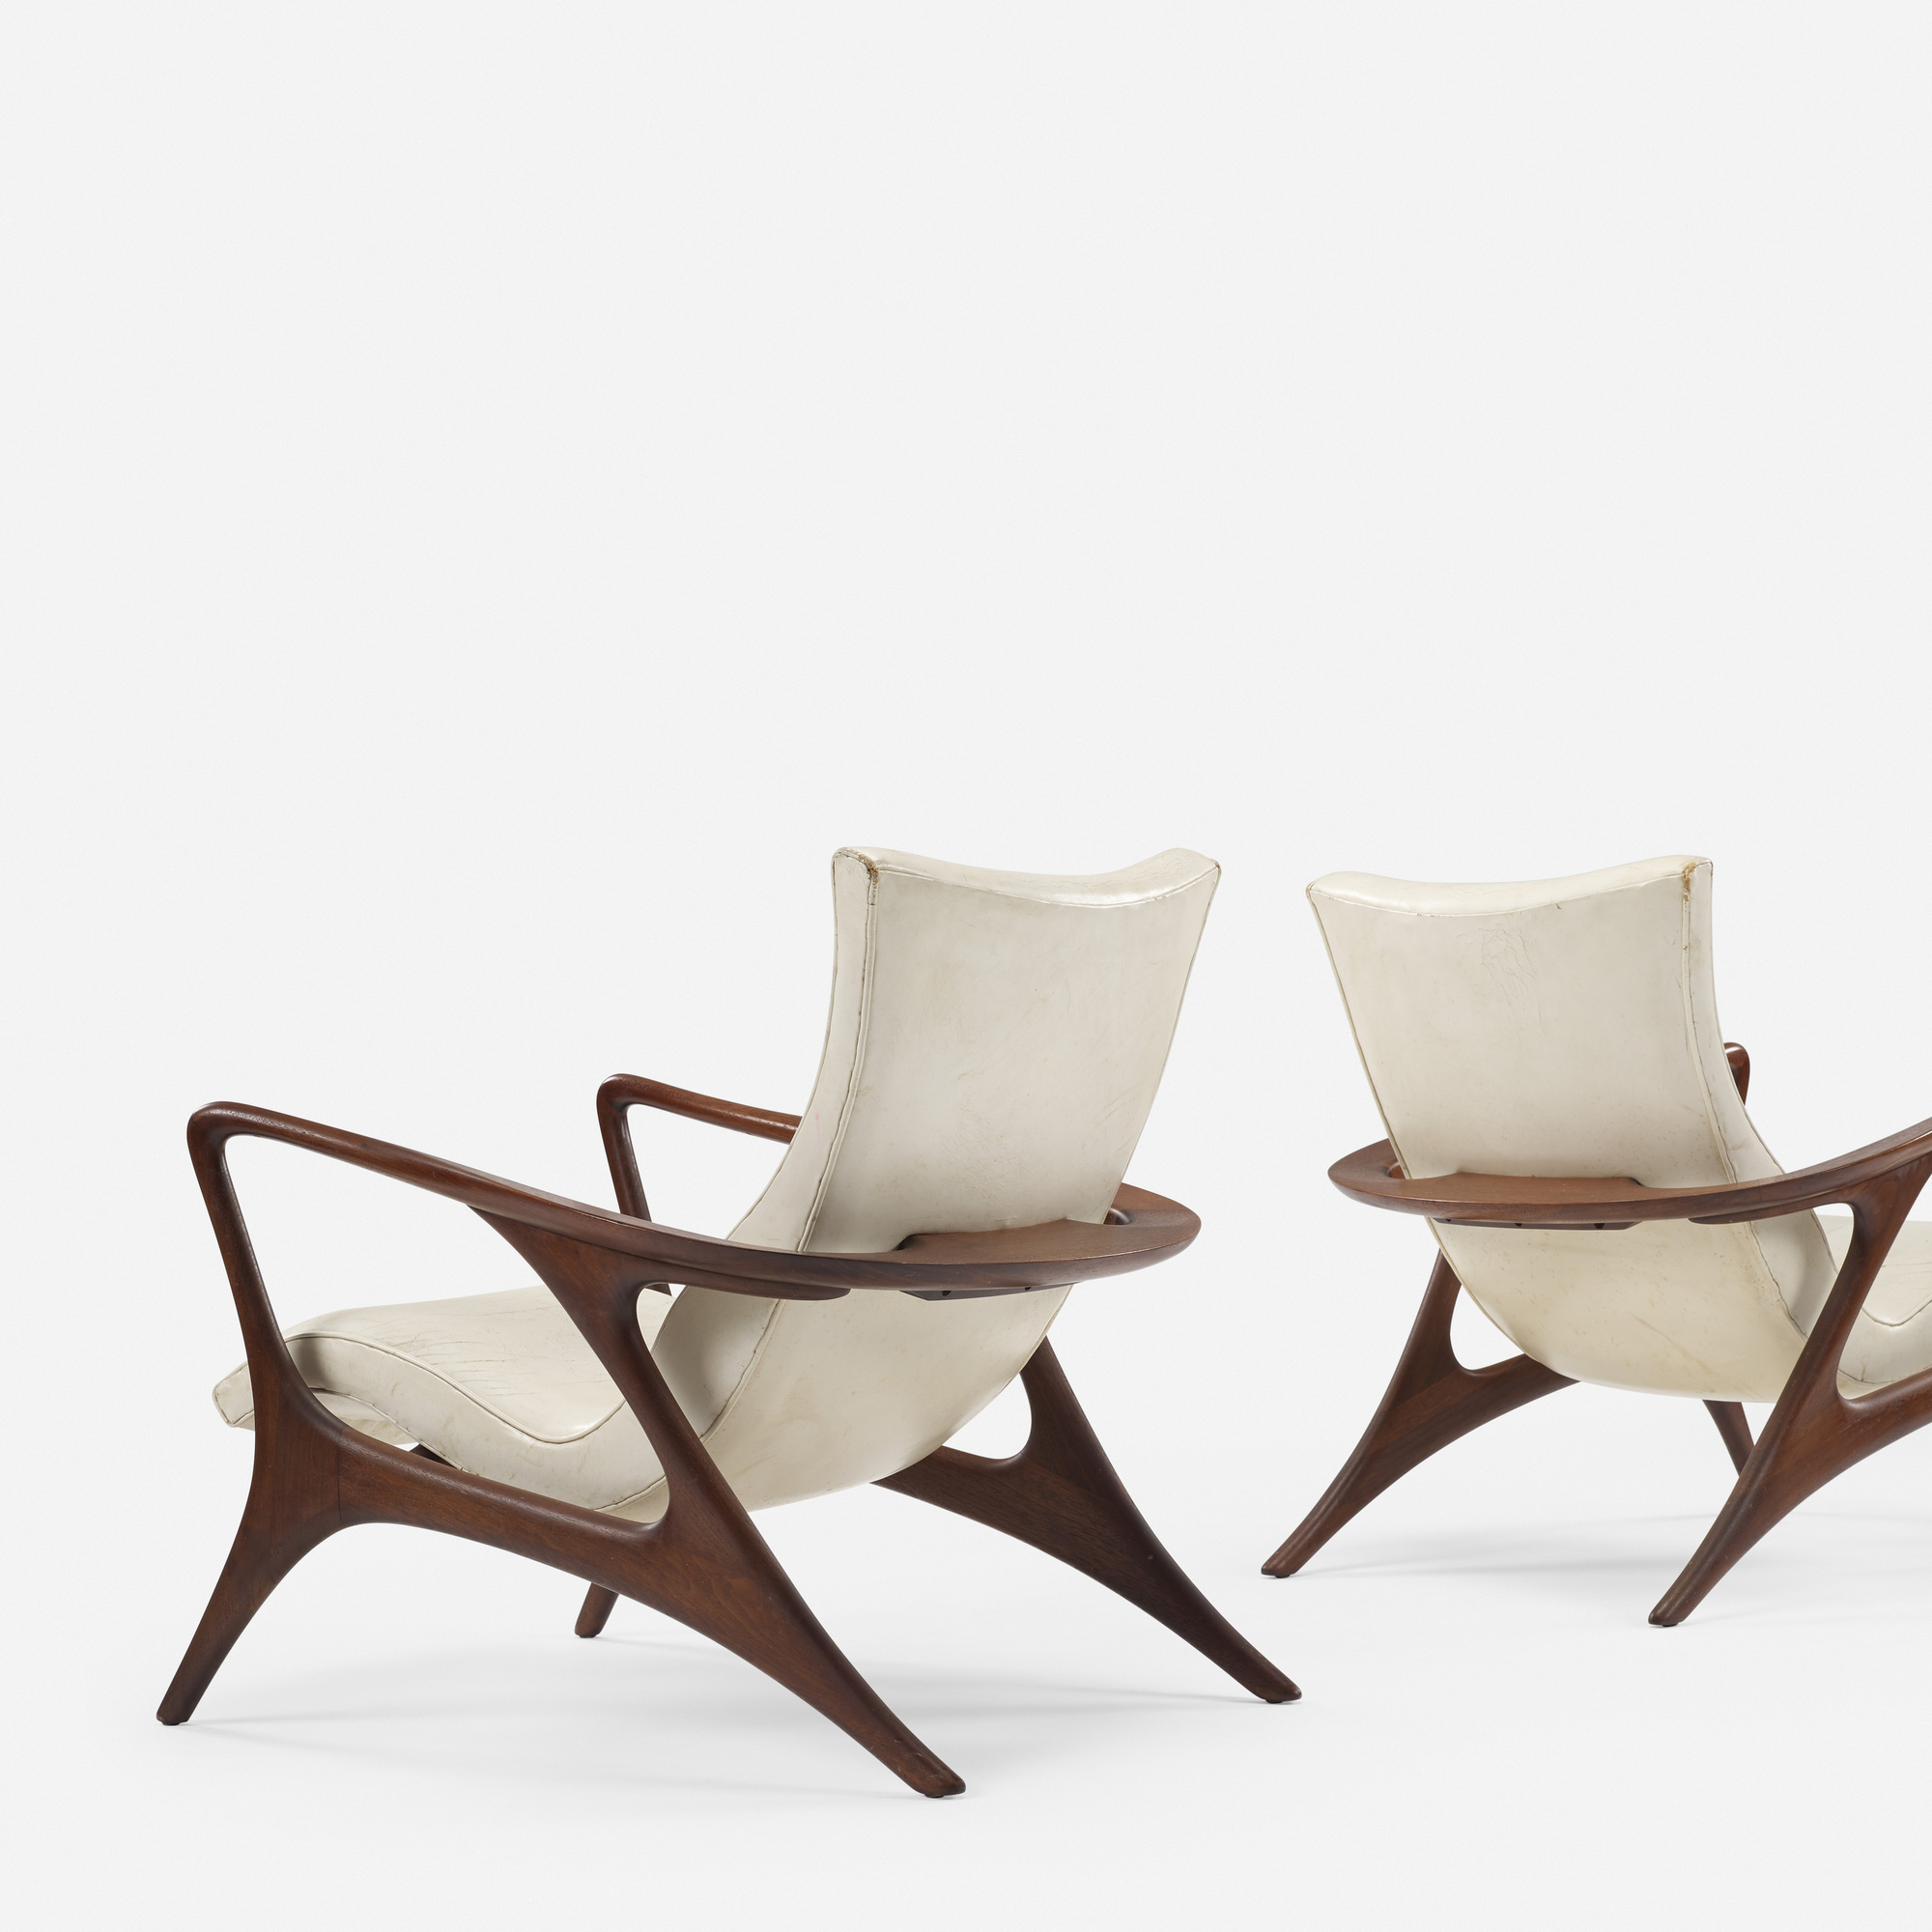 358: Vladimir Kagan / Contour lounge chairs, pair (3 of 5)